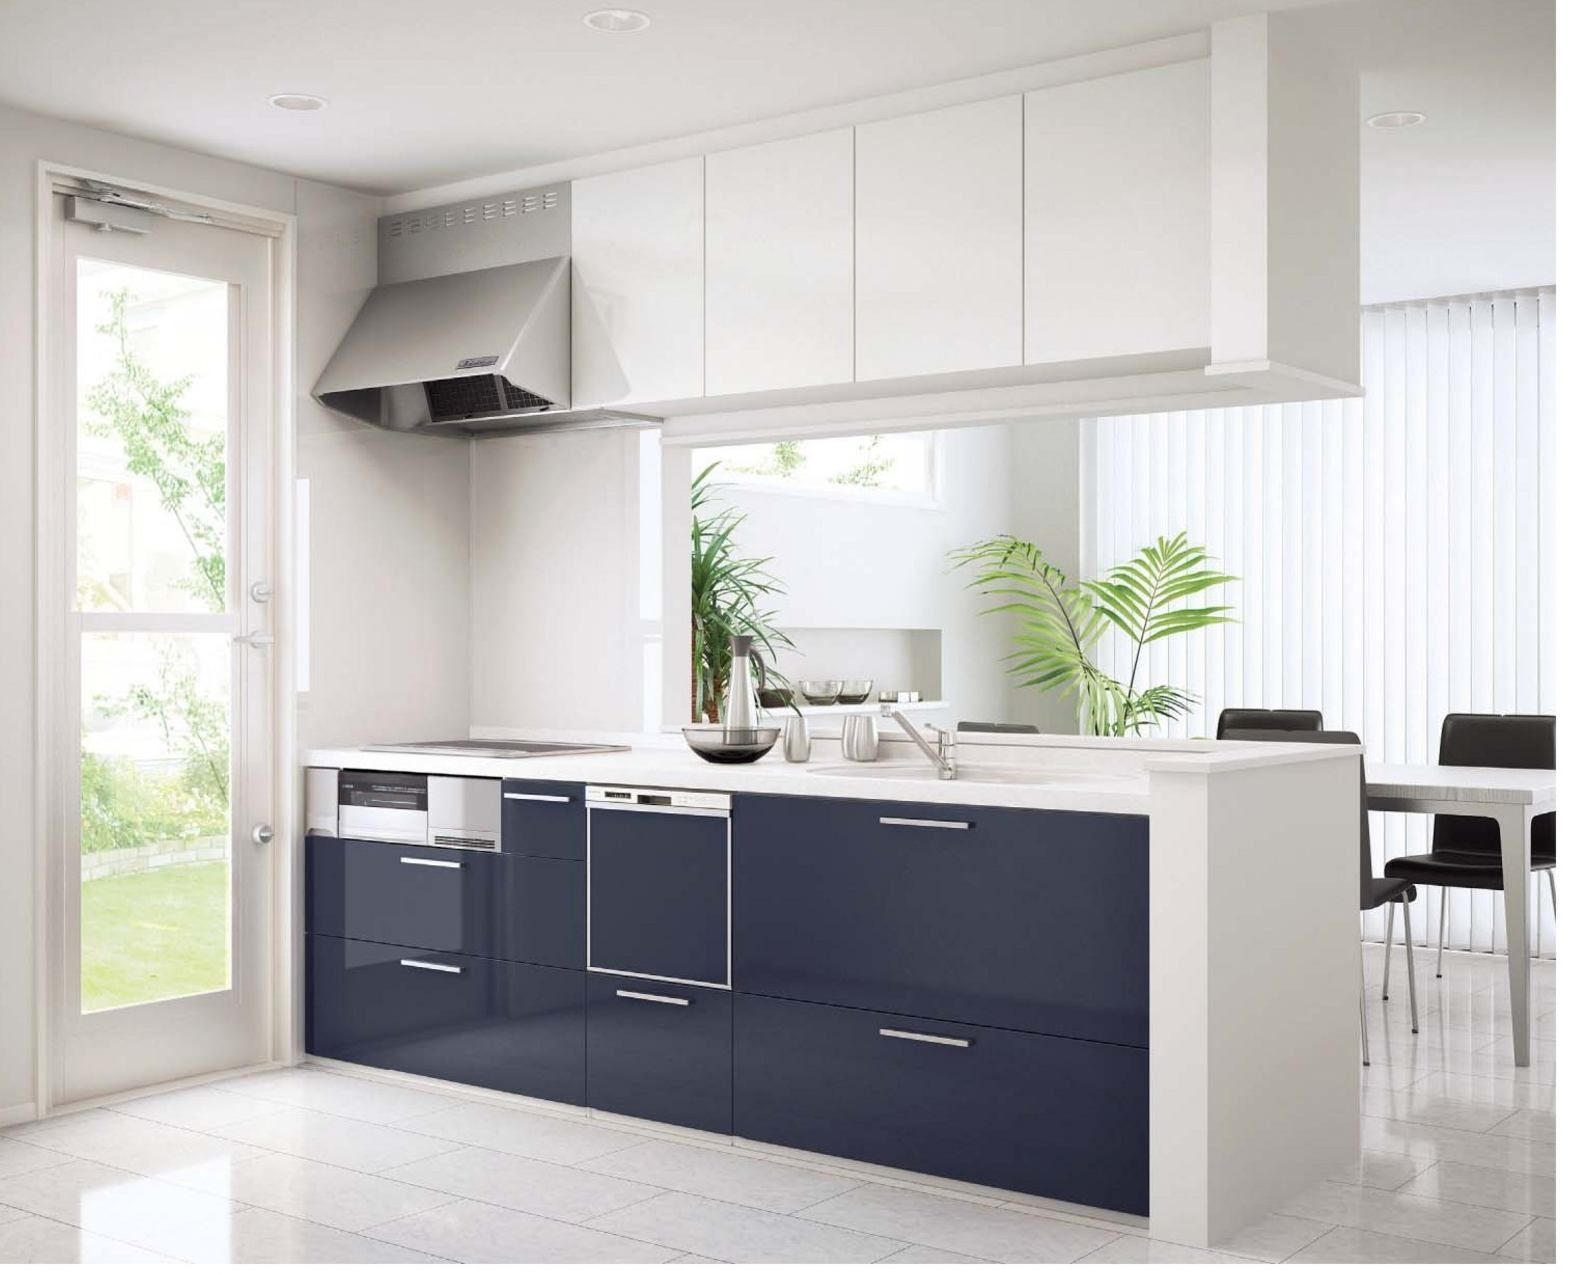 Kitchen White Ikea Kitchen Design Ideas Blue High Gloss Kitchen Island  Stainless Steel Range Hood Wall